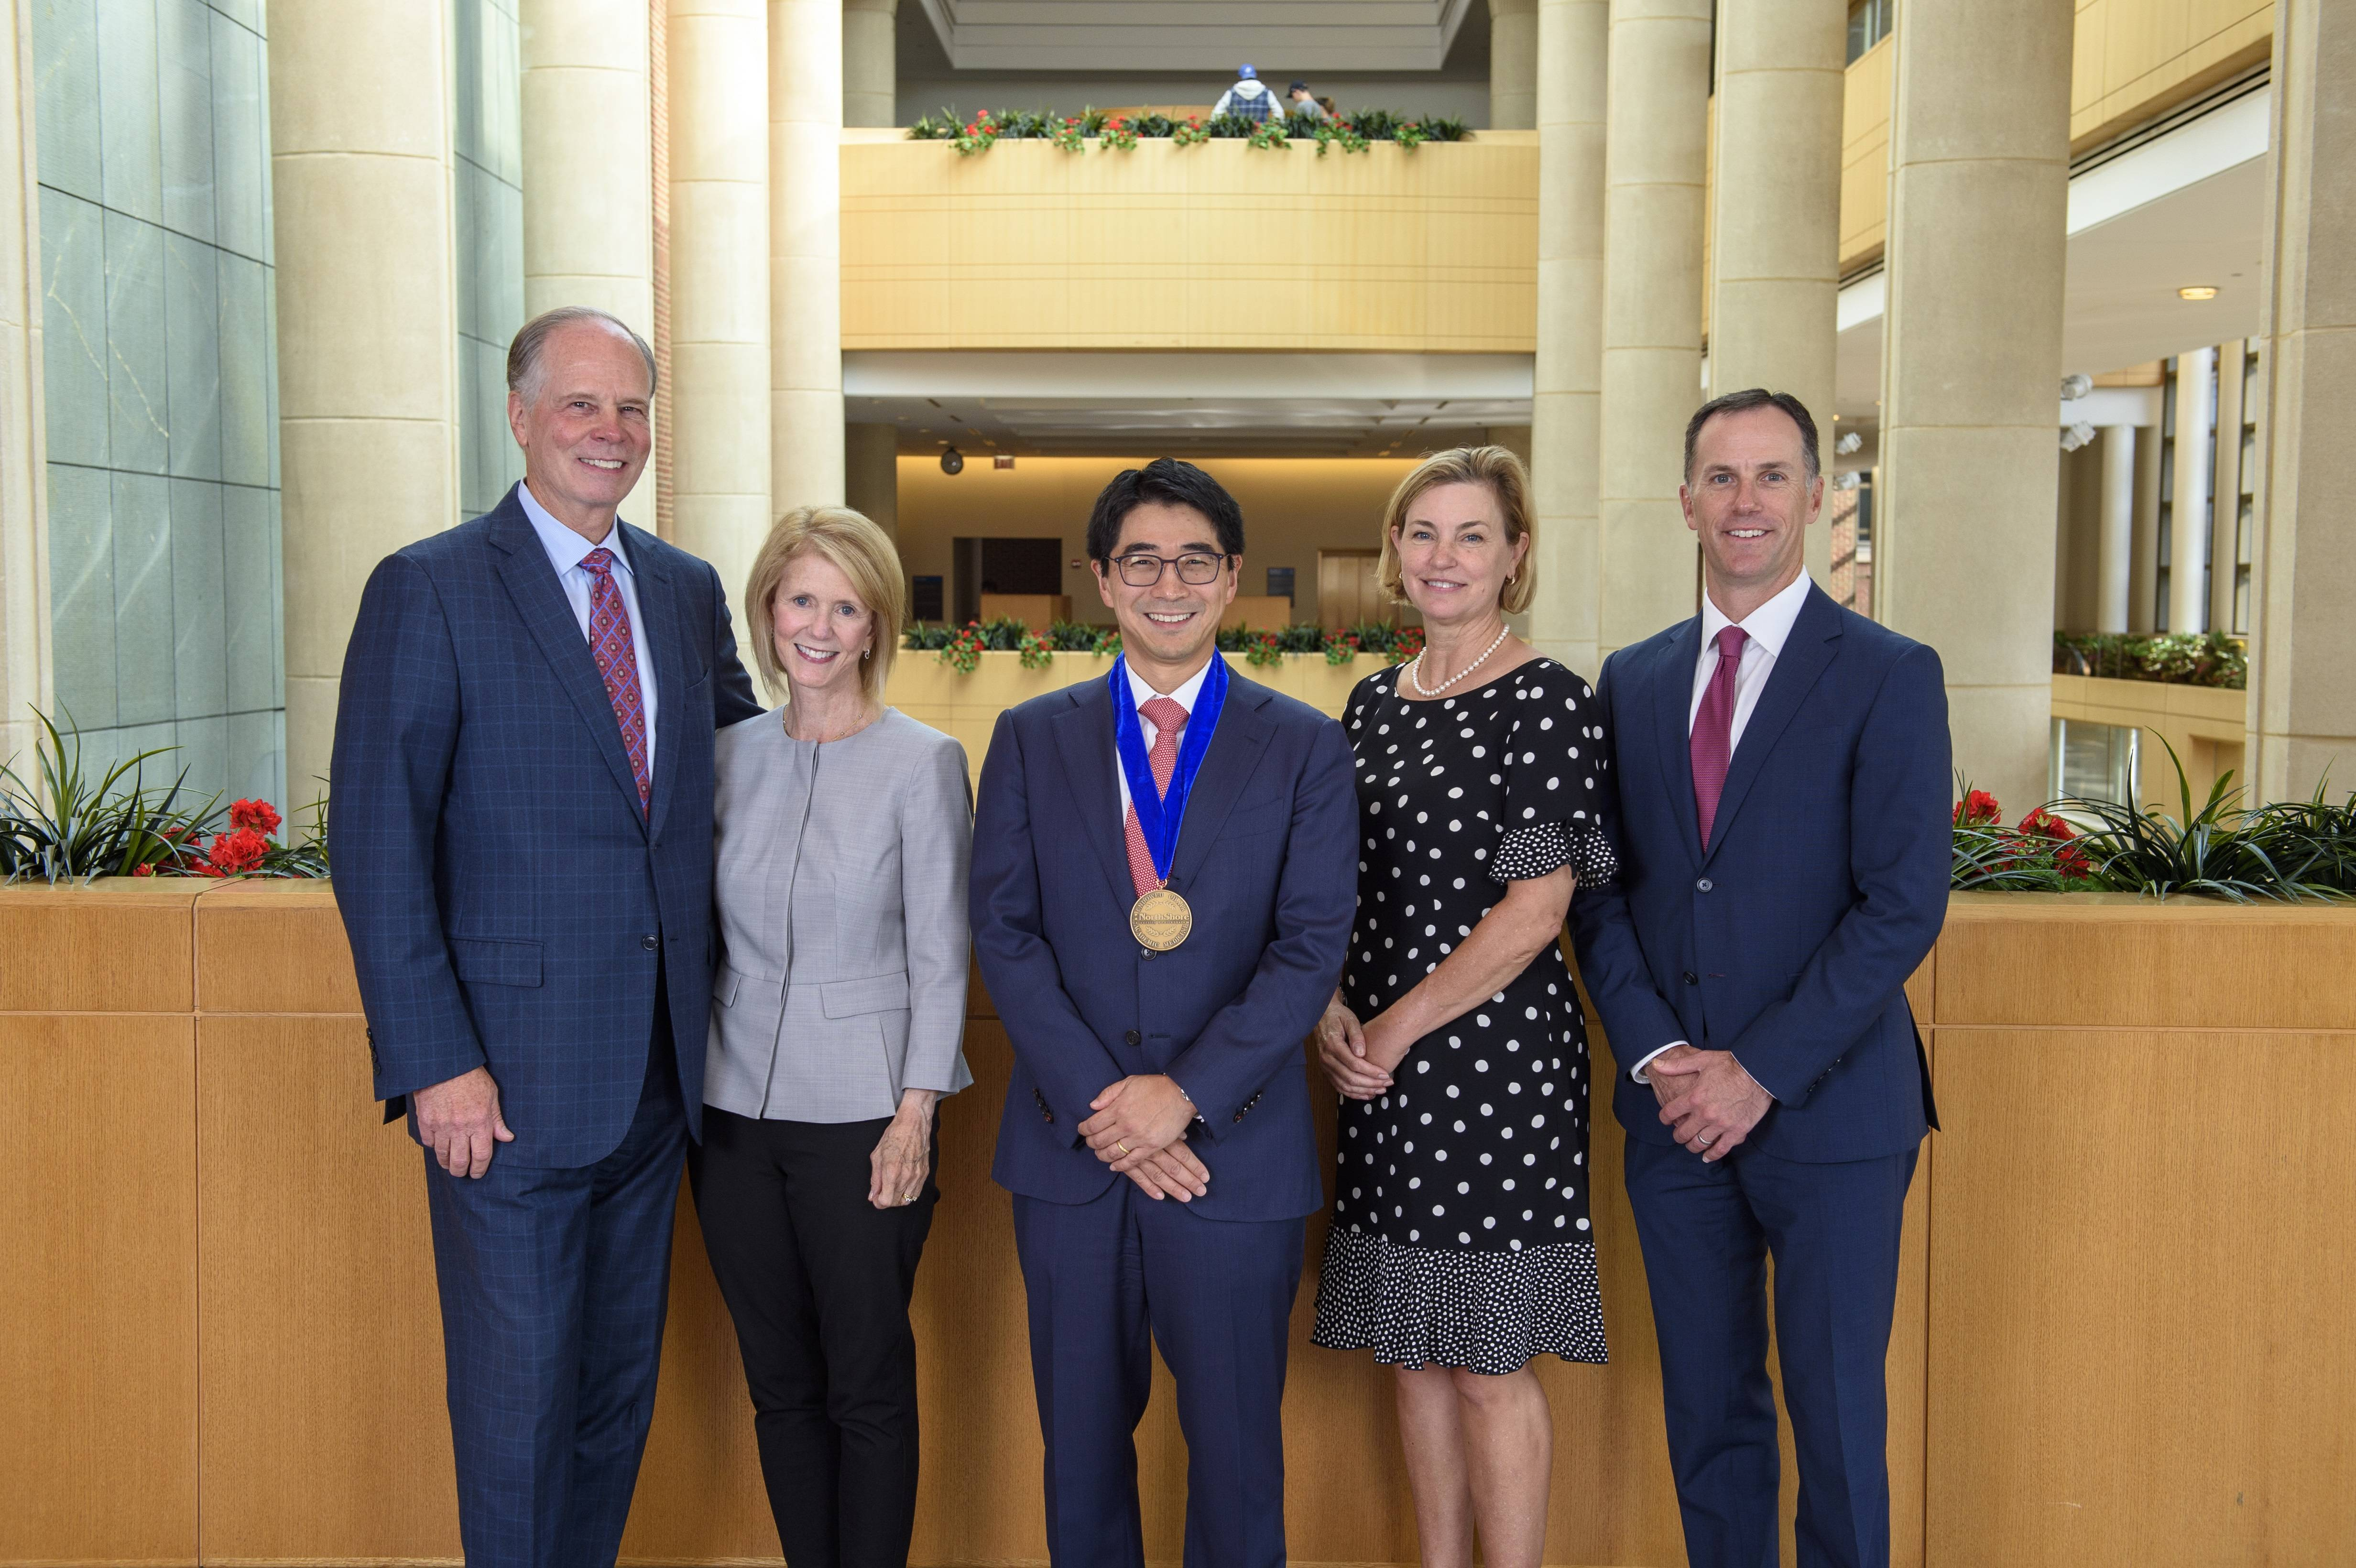 (From left) Mark Neaman, Susan Neaman, Dr. Jason Koh, Laura Koh, and NorthShore President and CEO J.P. Gallagher.